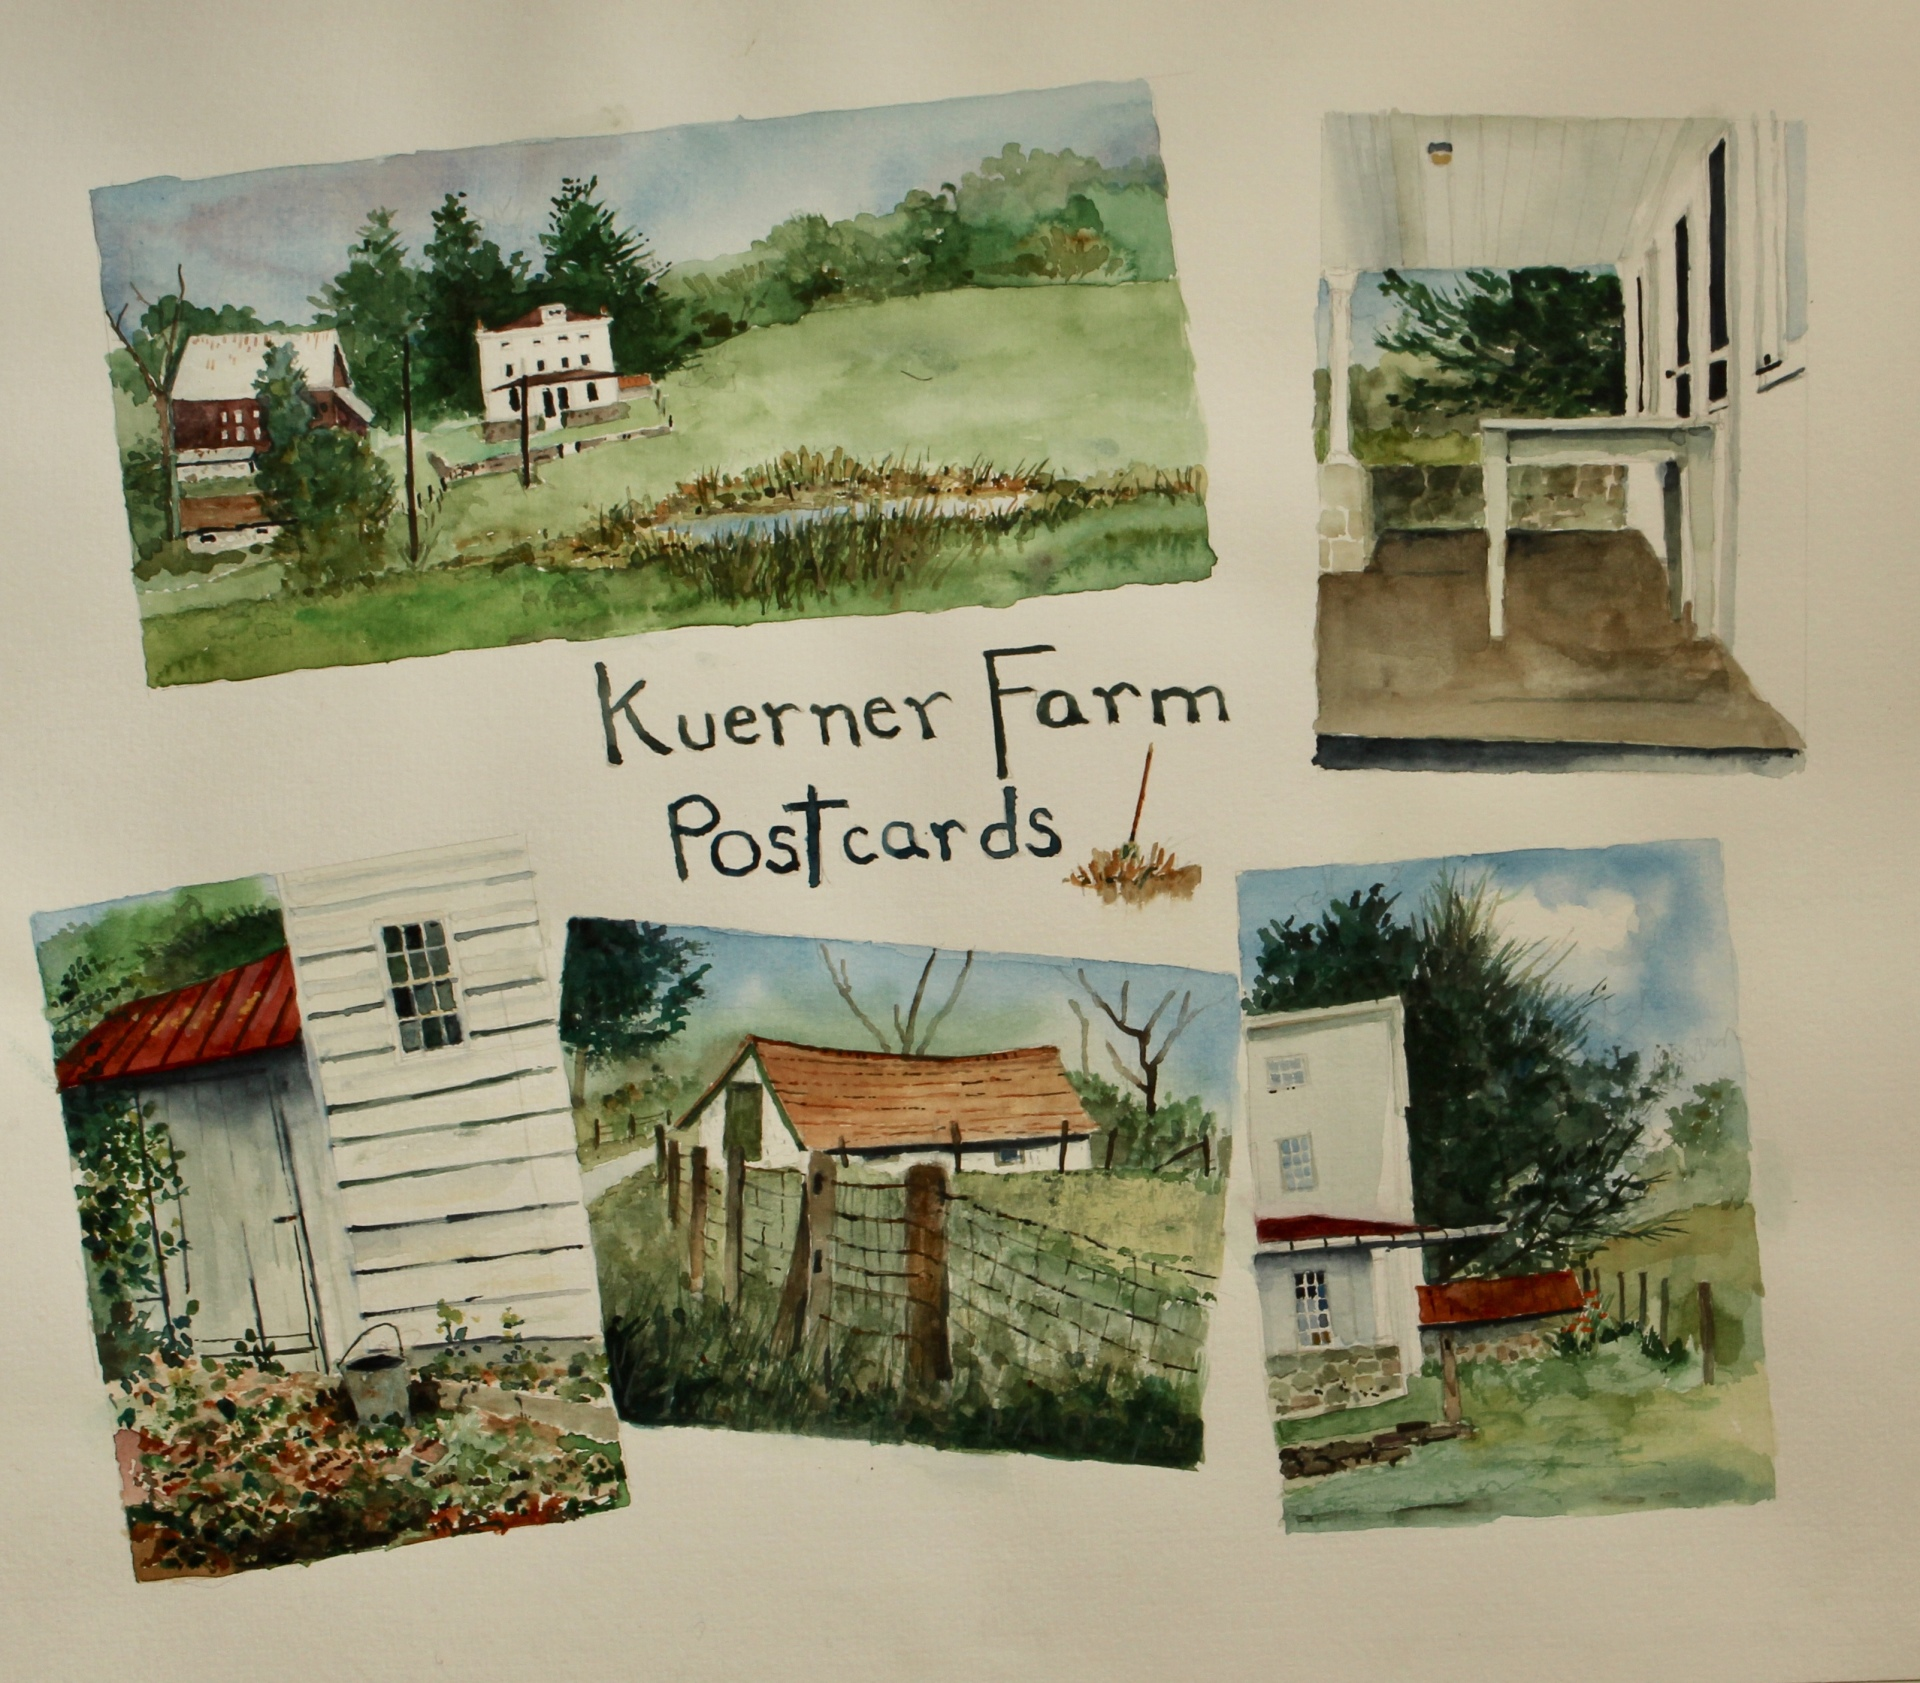 PAINTING AT THE KUERNER FARM